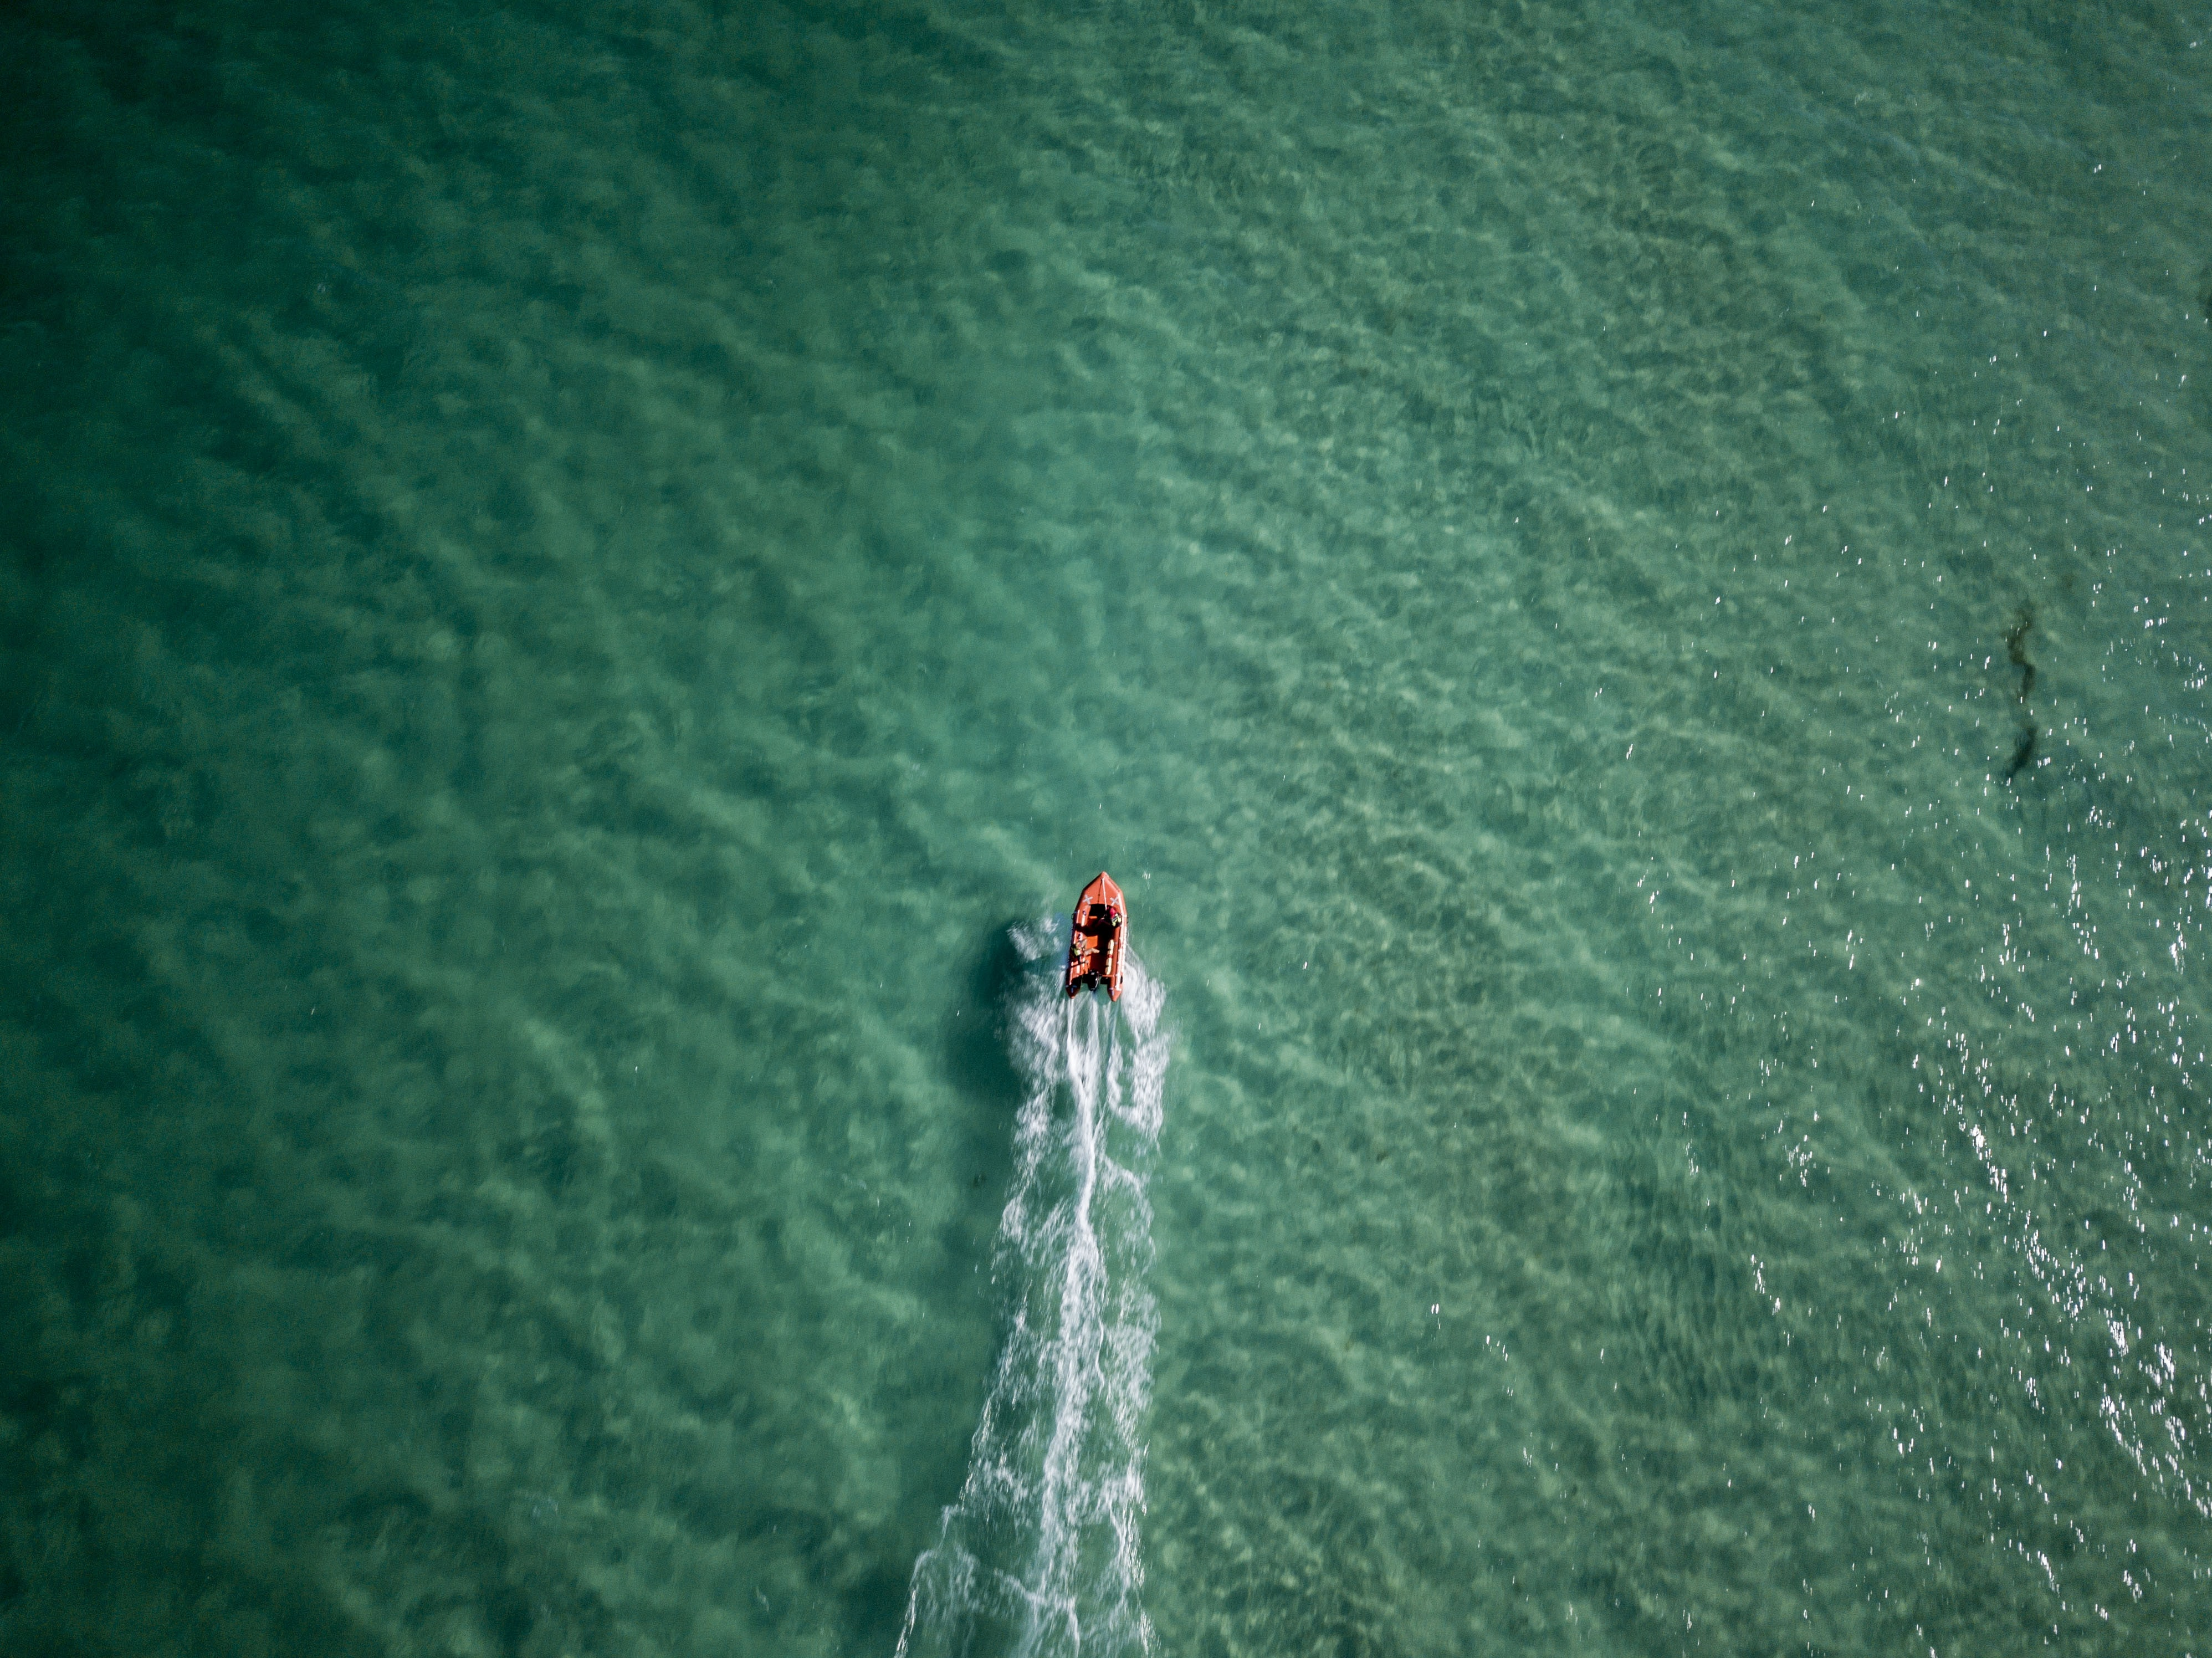 aerial photo of person riding kayak on bodies of water during daytime